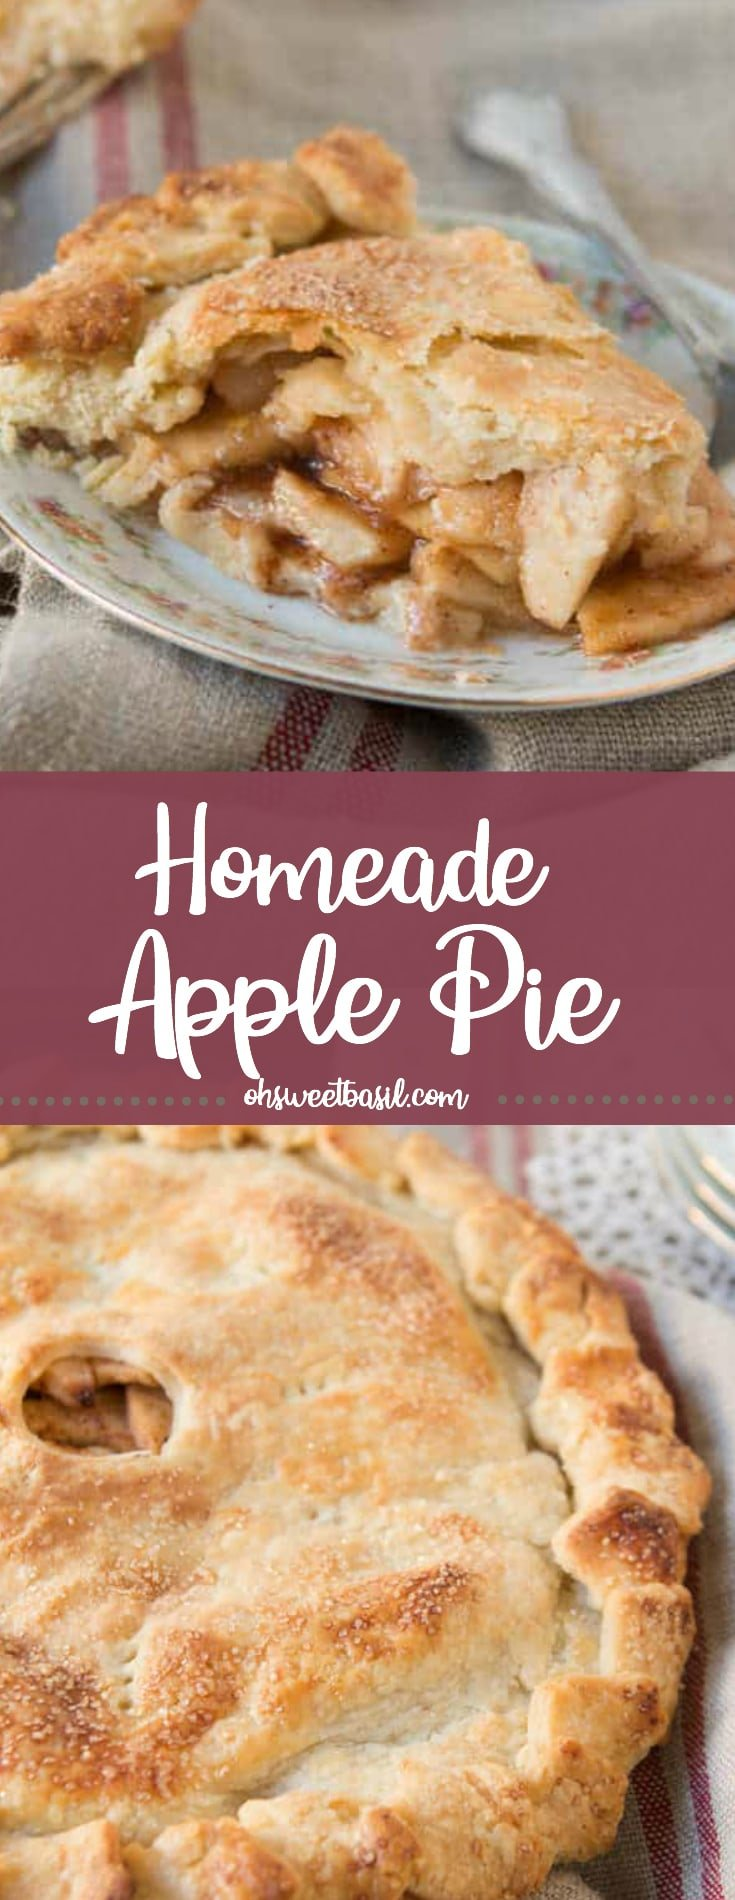 A slice of homemade apple pie with a flaky crust